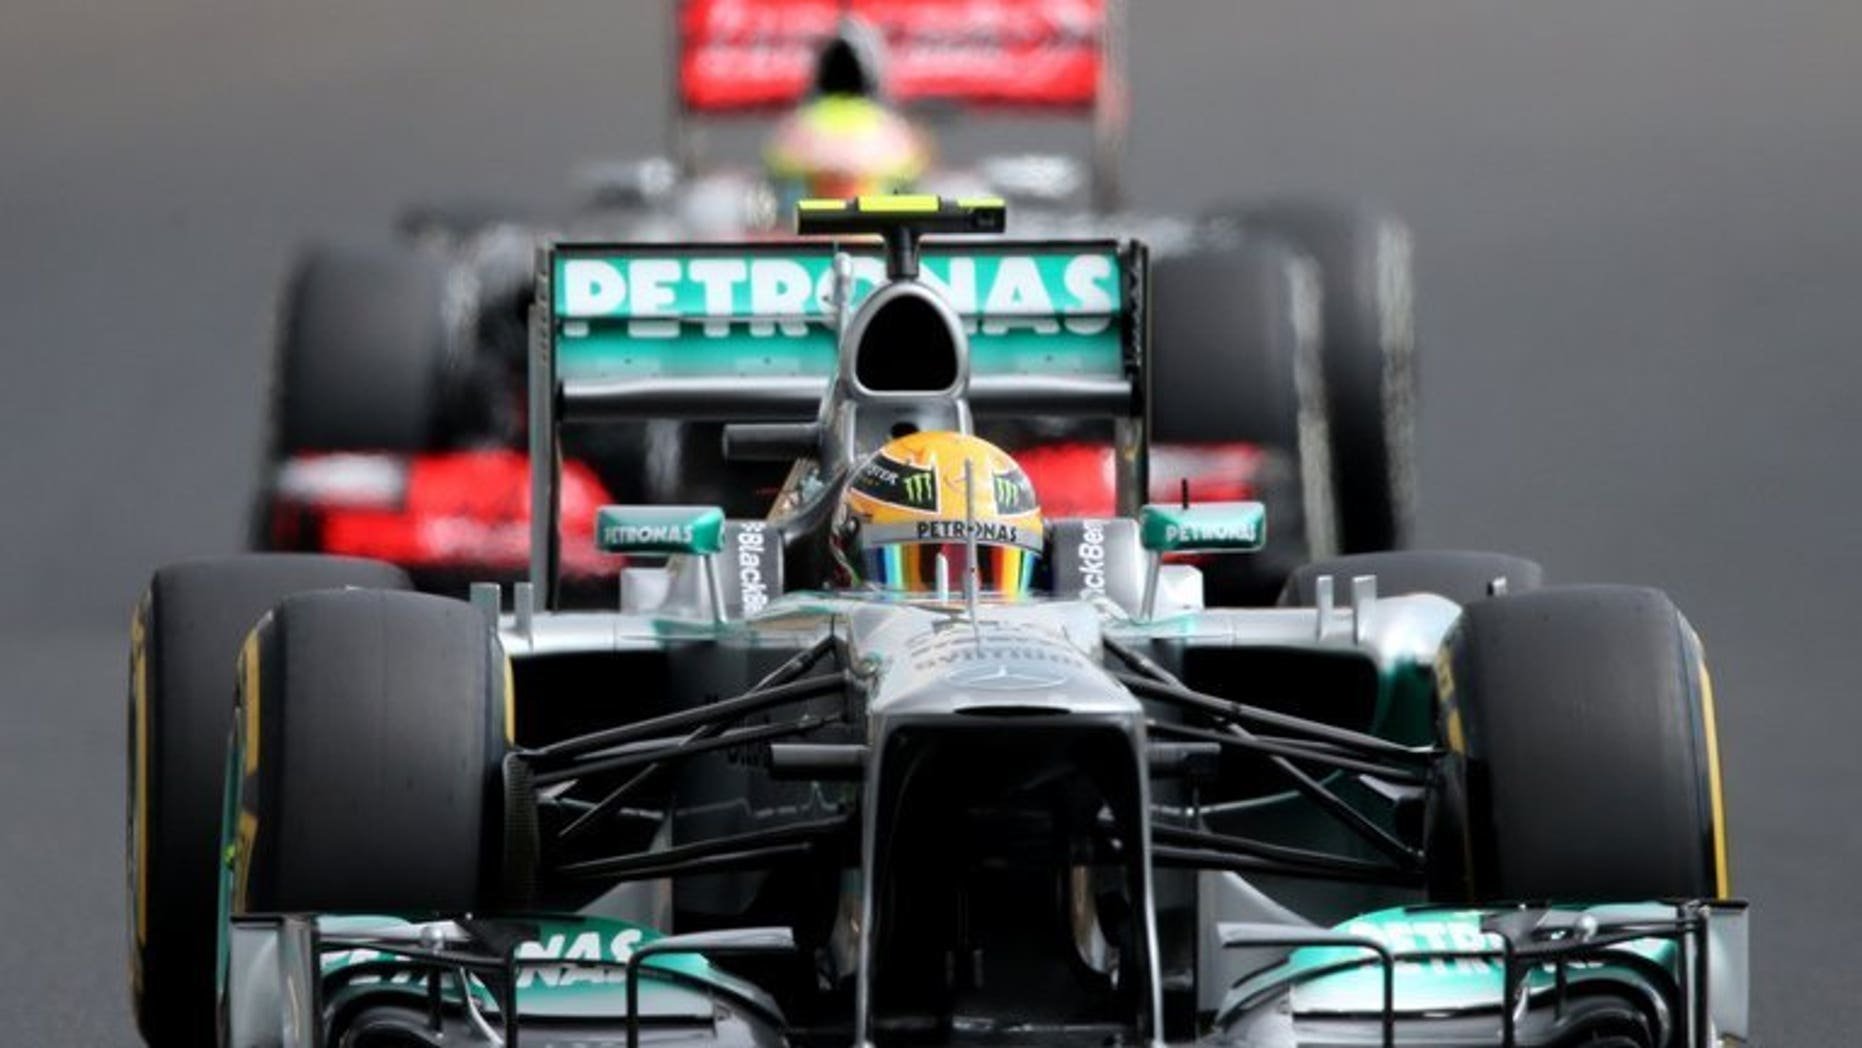 Mercedes' British driver Lewis Hamilton drives during the qualifying session at the Hungaroring circuit in Budapest on July 27, 2013. Hamilton of Mercedes won the Hungarian Grand Prix from pole on Sunday, with Lotus' Kimi Raikkonen second and defending champion Sebastian Vettel of Red Bull third.